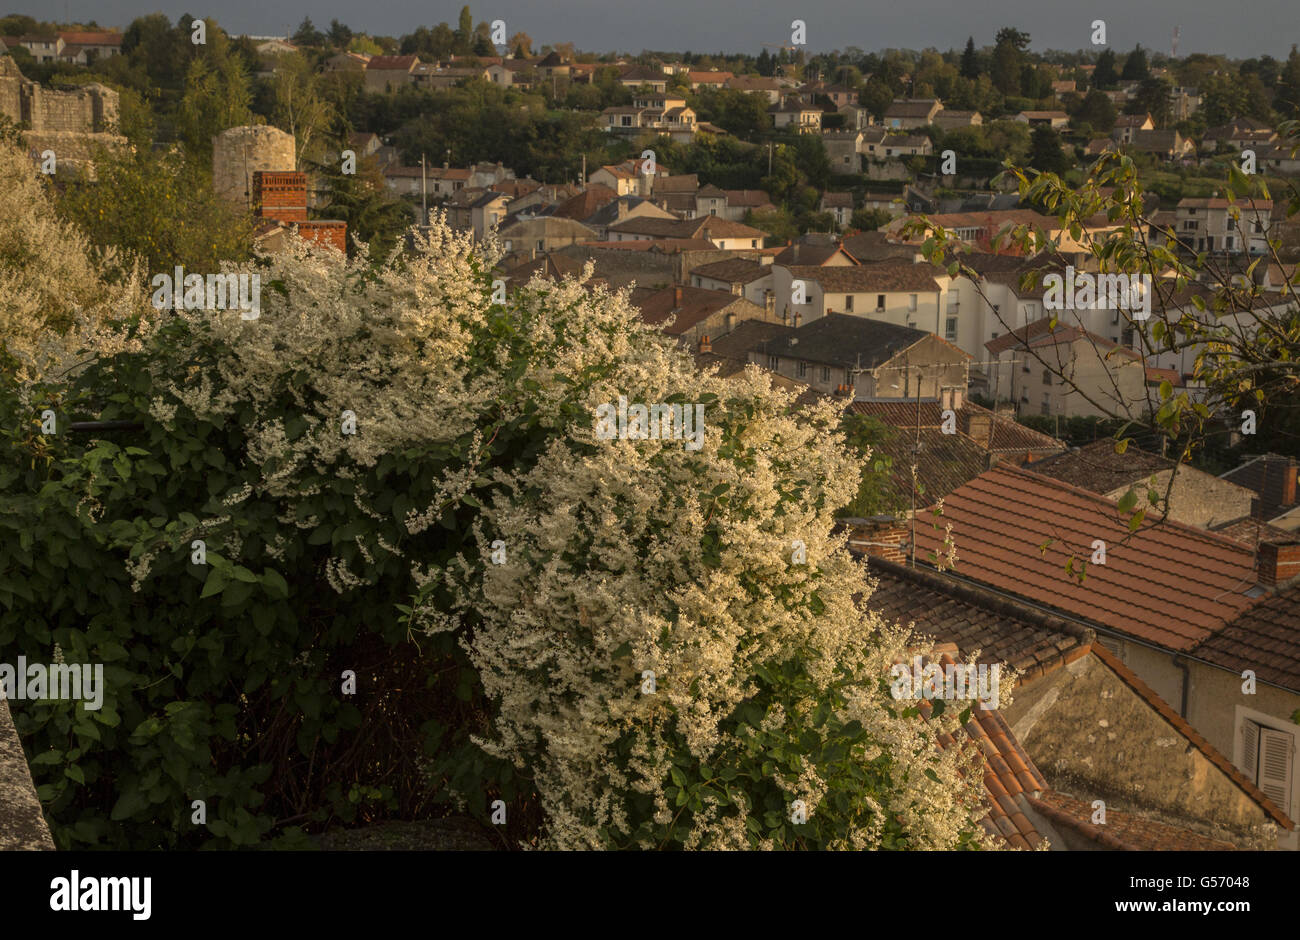 Silver Lace Vine (Fallopia baldschuanica) introduced species, flowering, growing in town, Chauvigny, Vienne, Poitou - Stock Image